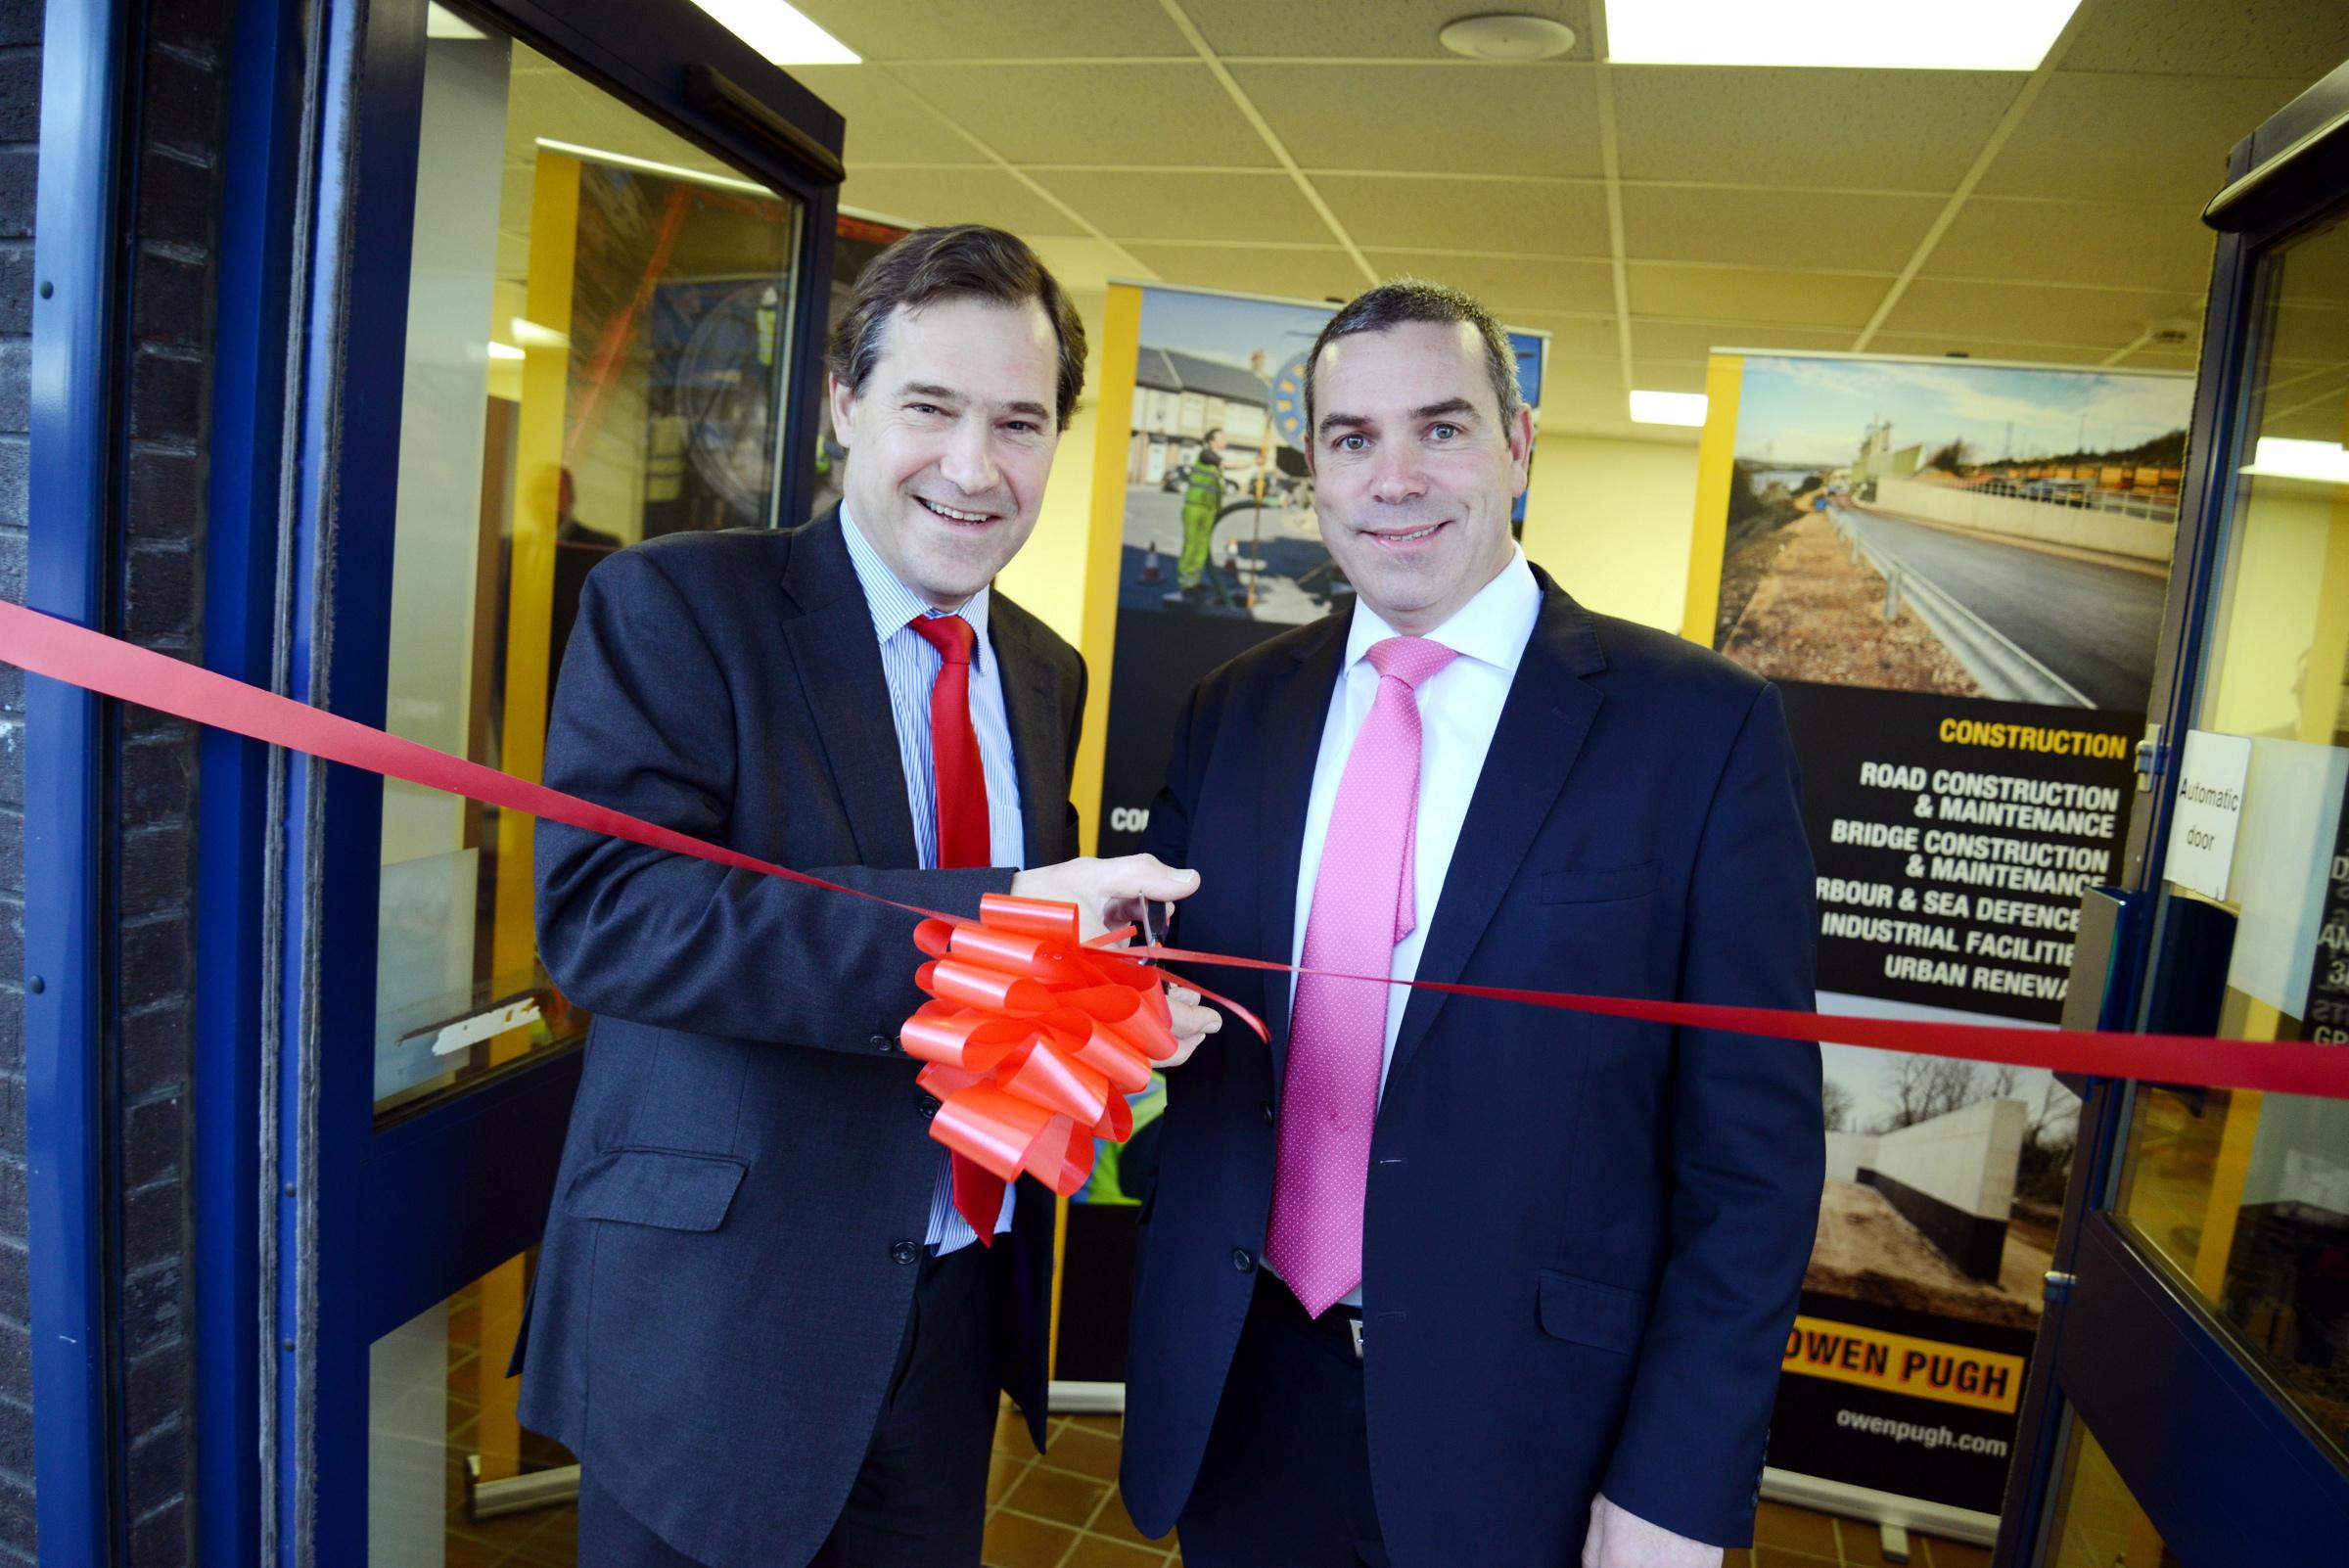 John Dickson, Owen Pugh Group chairman, left, with Andy Parker, HSBC senior corporate banking manager at the opening of the new depot